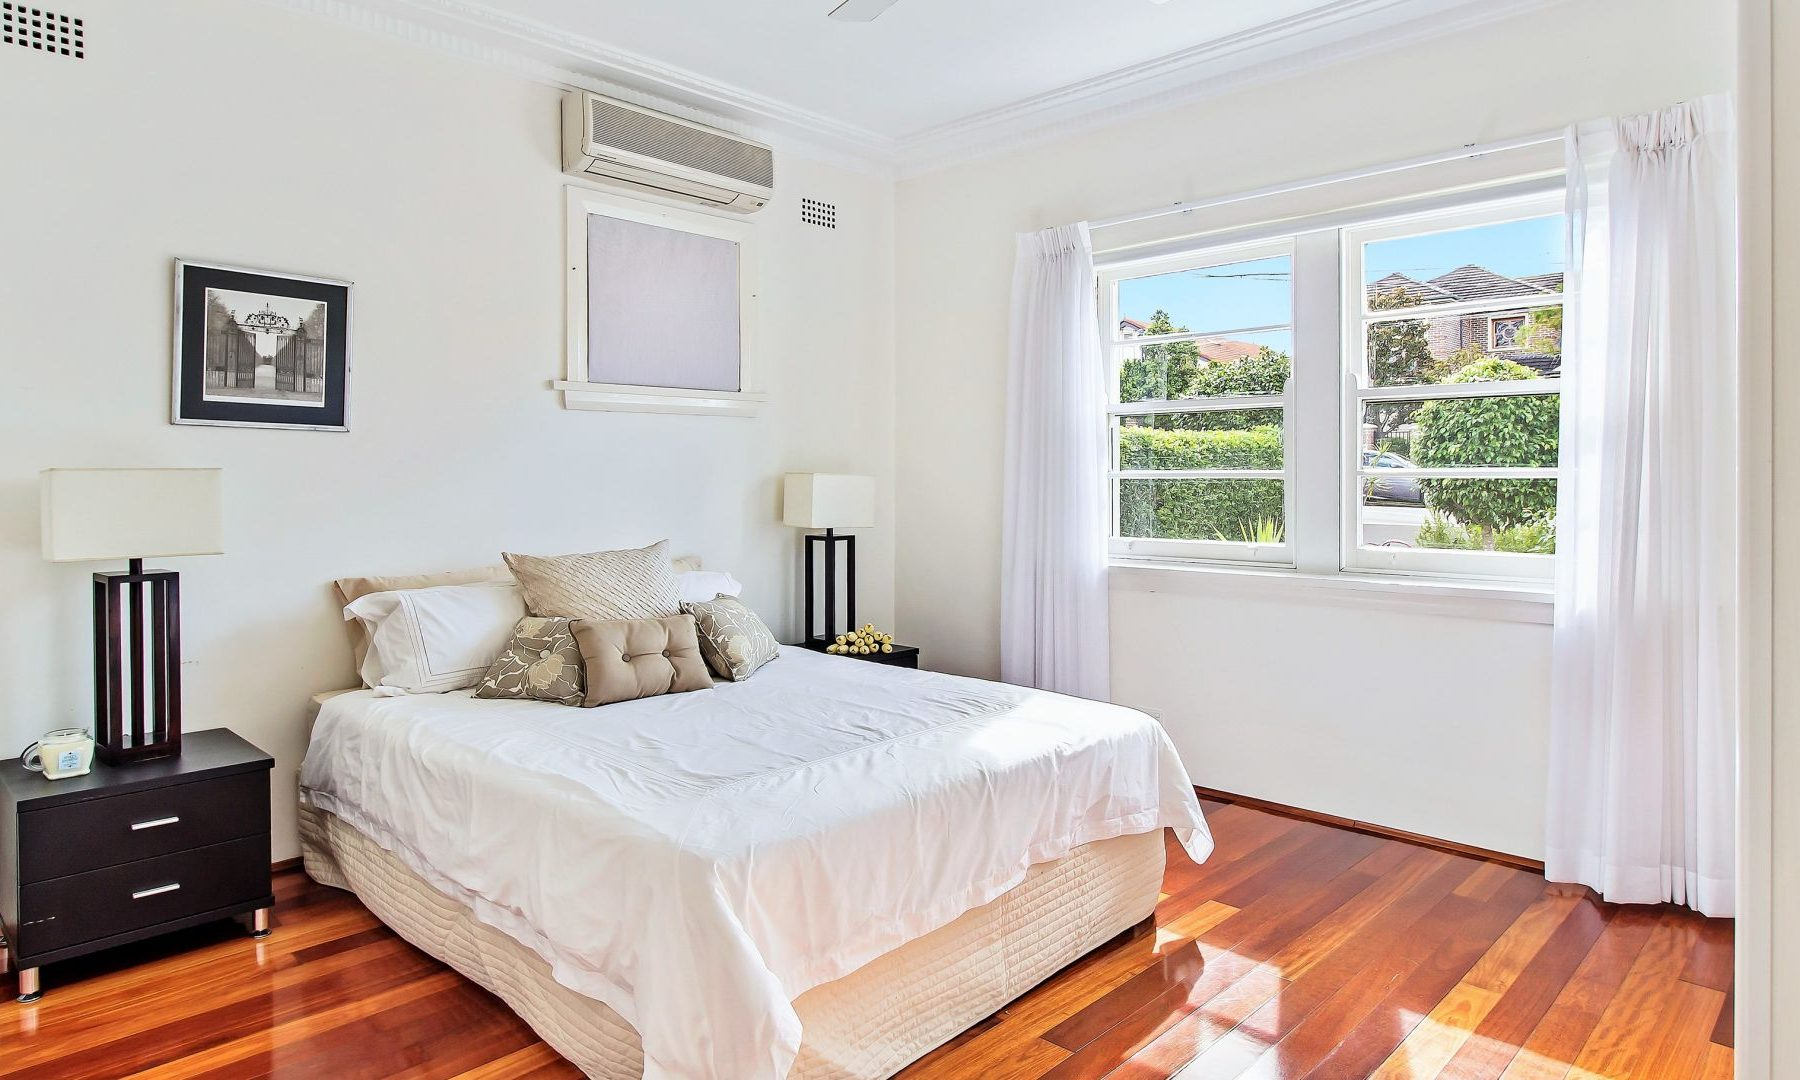 styling a house for sale Sydney Putney bedroom